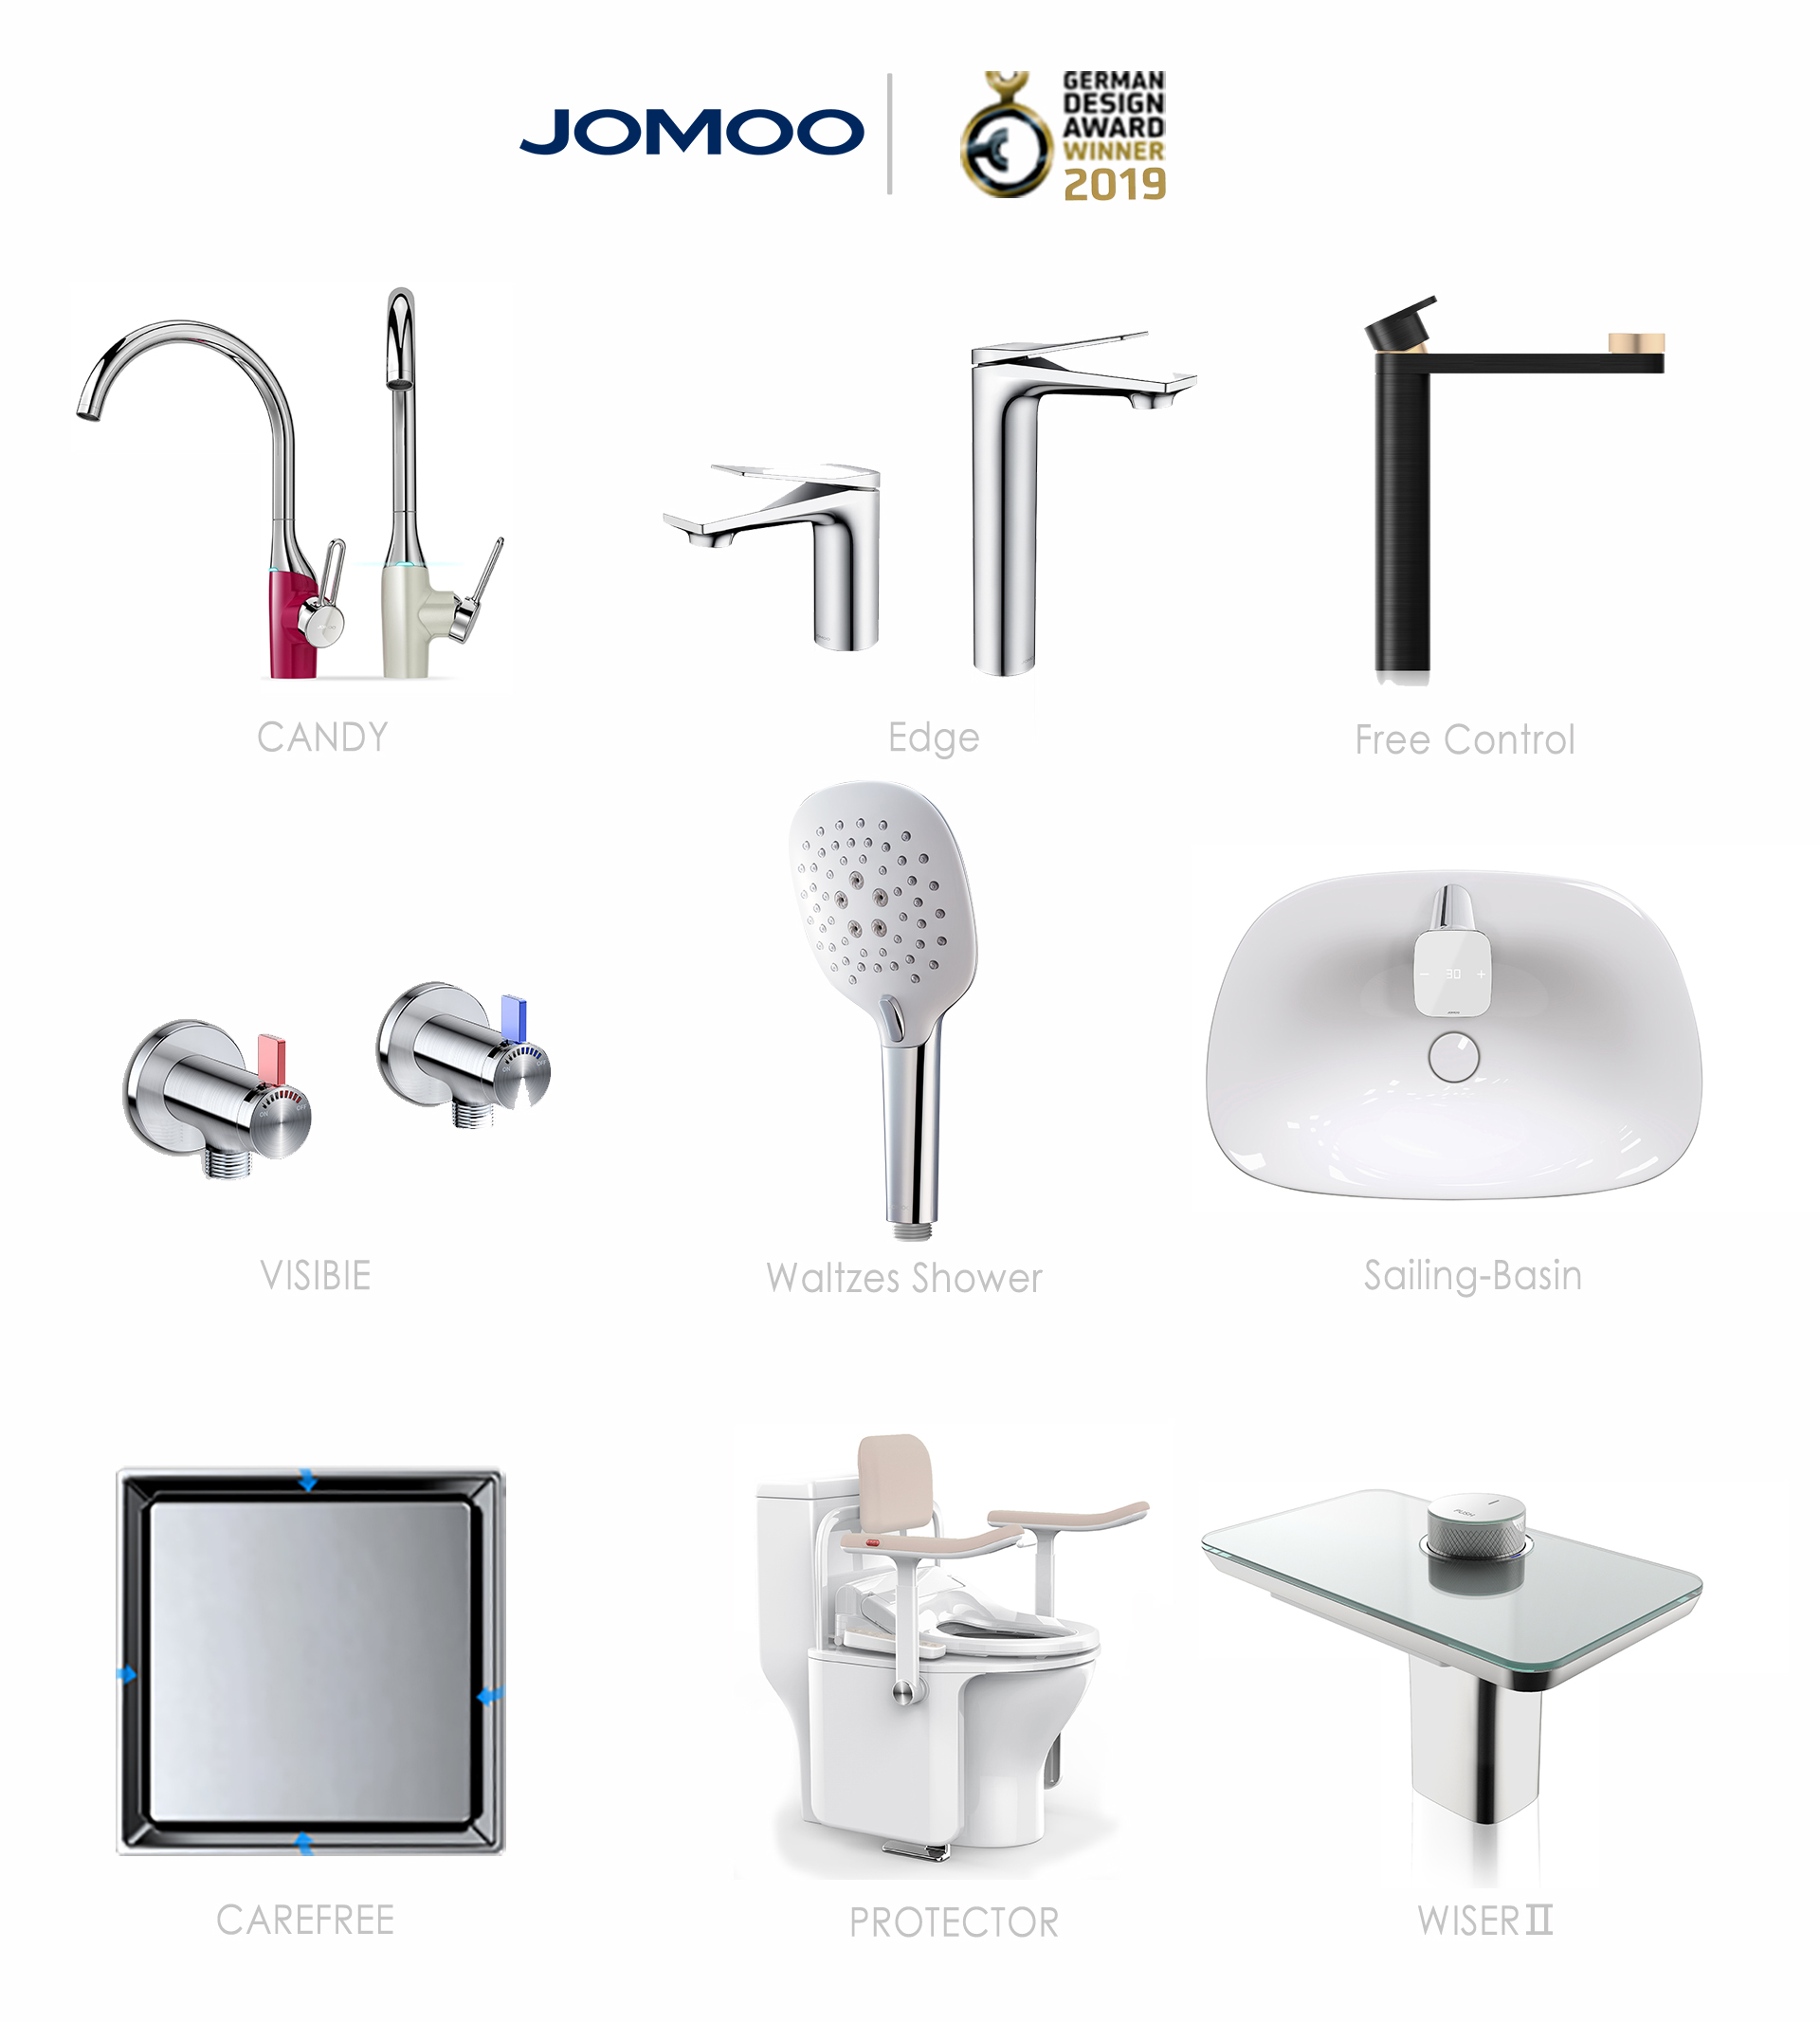 JOMOO Nominated by German Design Award With 9 Products JOMOO ...